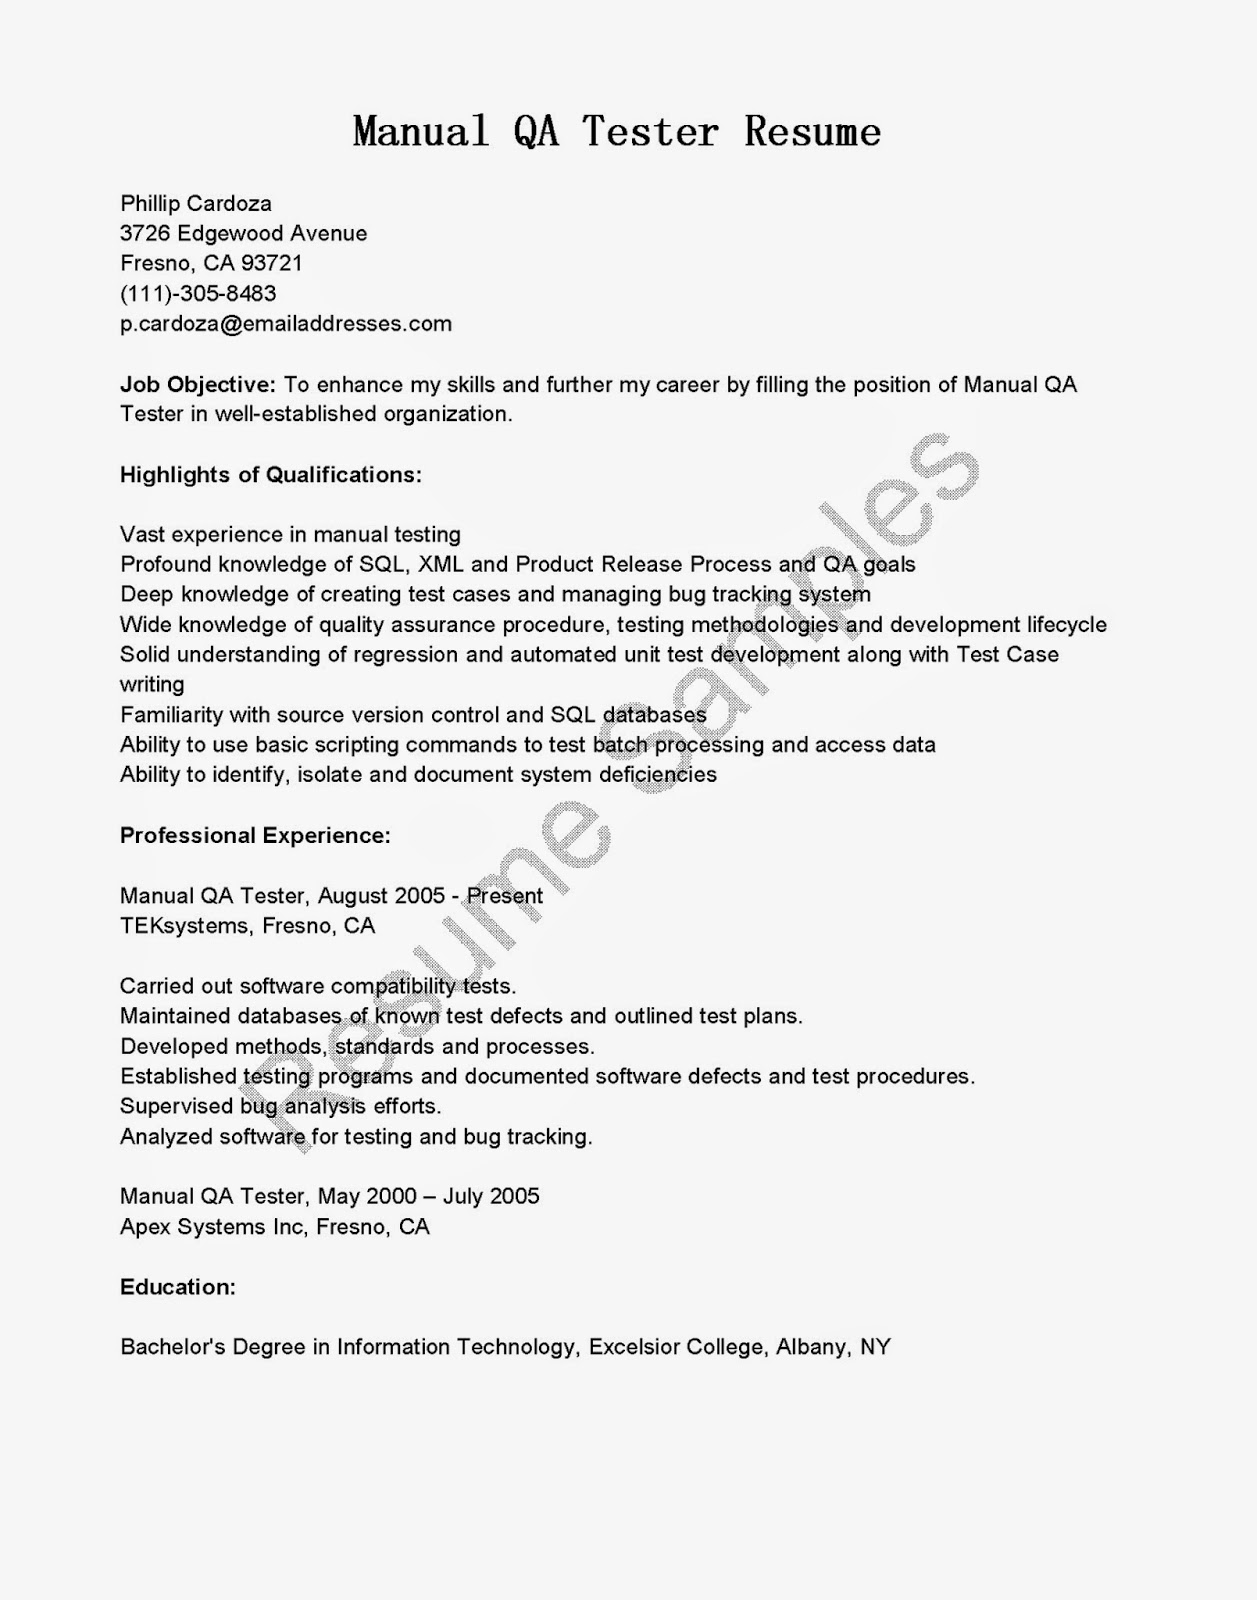 qa sample resume qa tester sample resume 04072017 manual testing sample resumes resume samples manual tester - Certified Software Quality Engineer Sample Resume